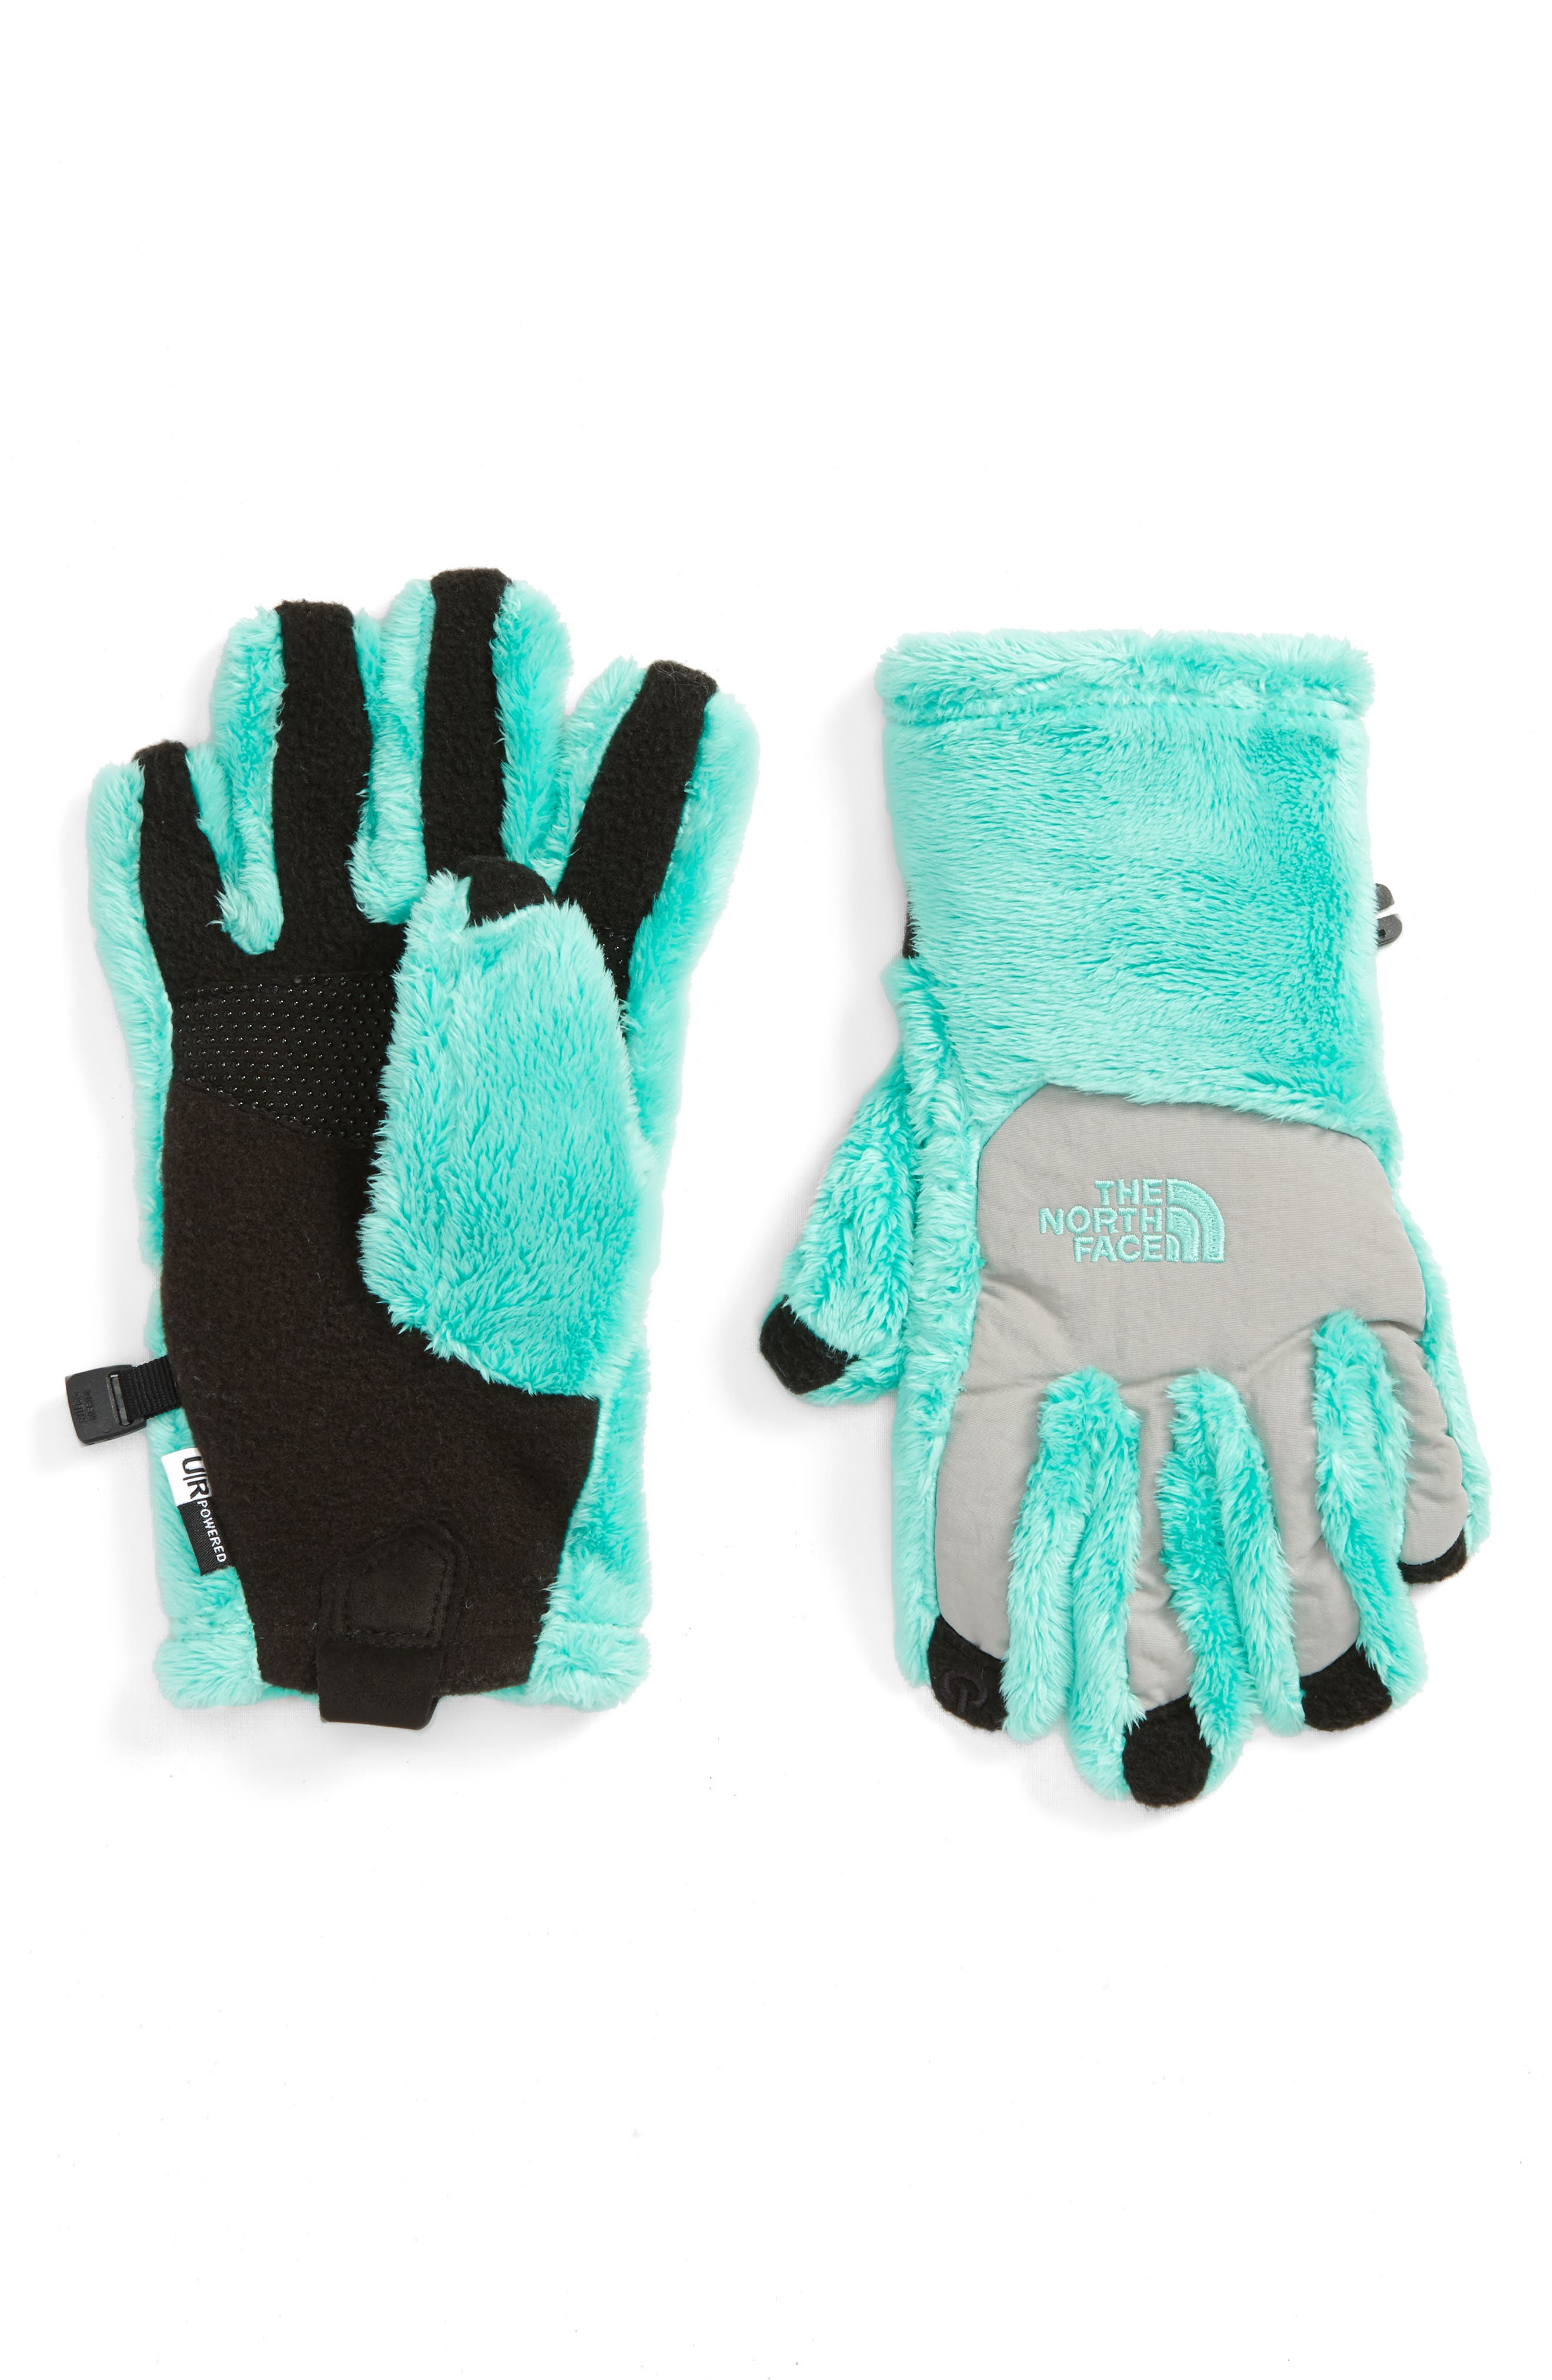 THE NORTH FACE Denali Thermal E-Tip<sup>™</sup> Gloves